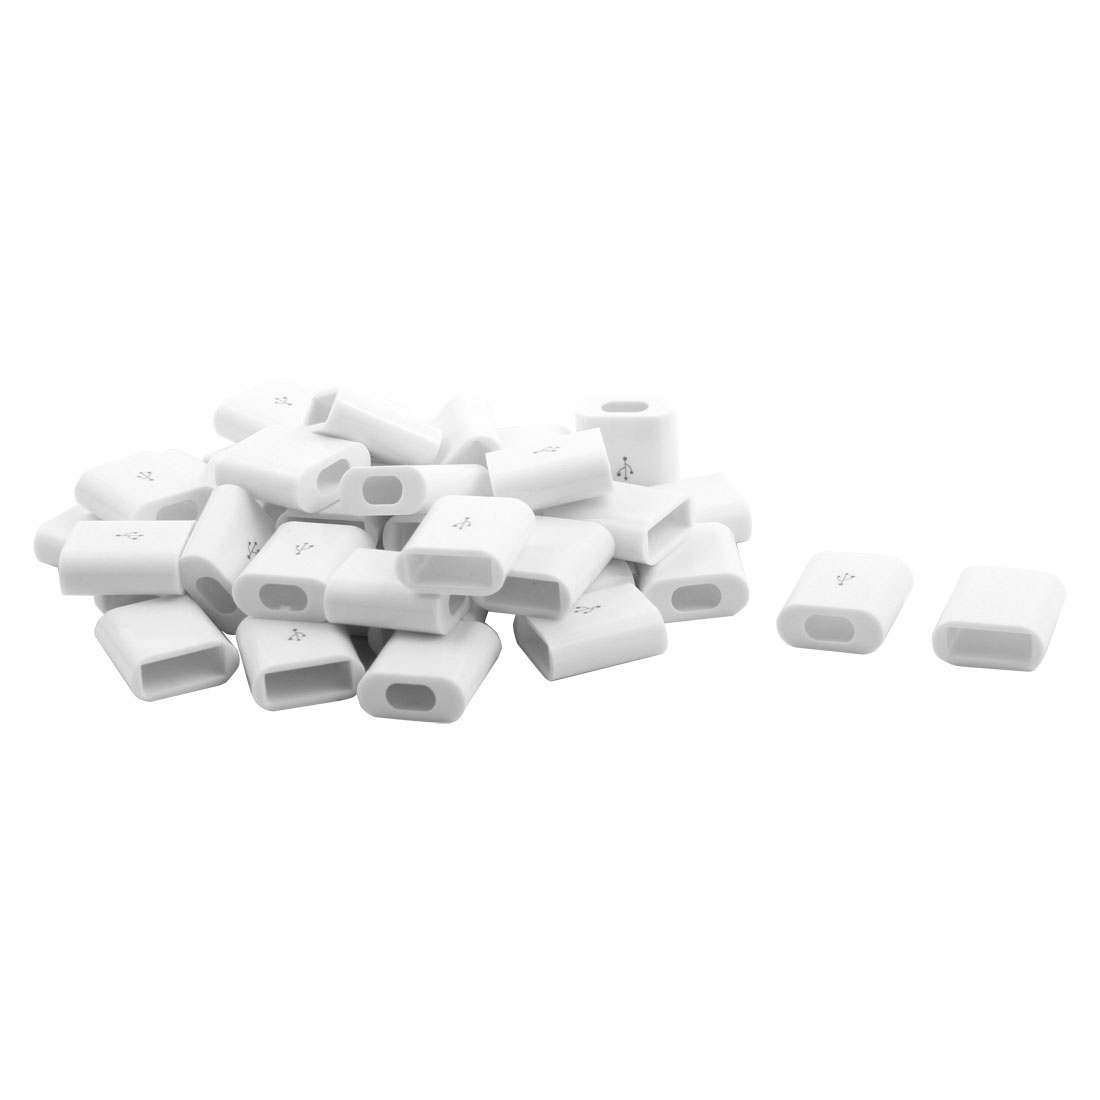 Plastic USB Connector Port Shell Cover Accessories White 17 x 15 x 7mm 40 Pcs